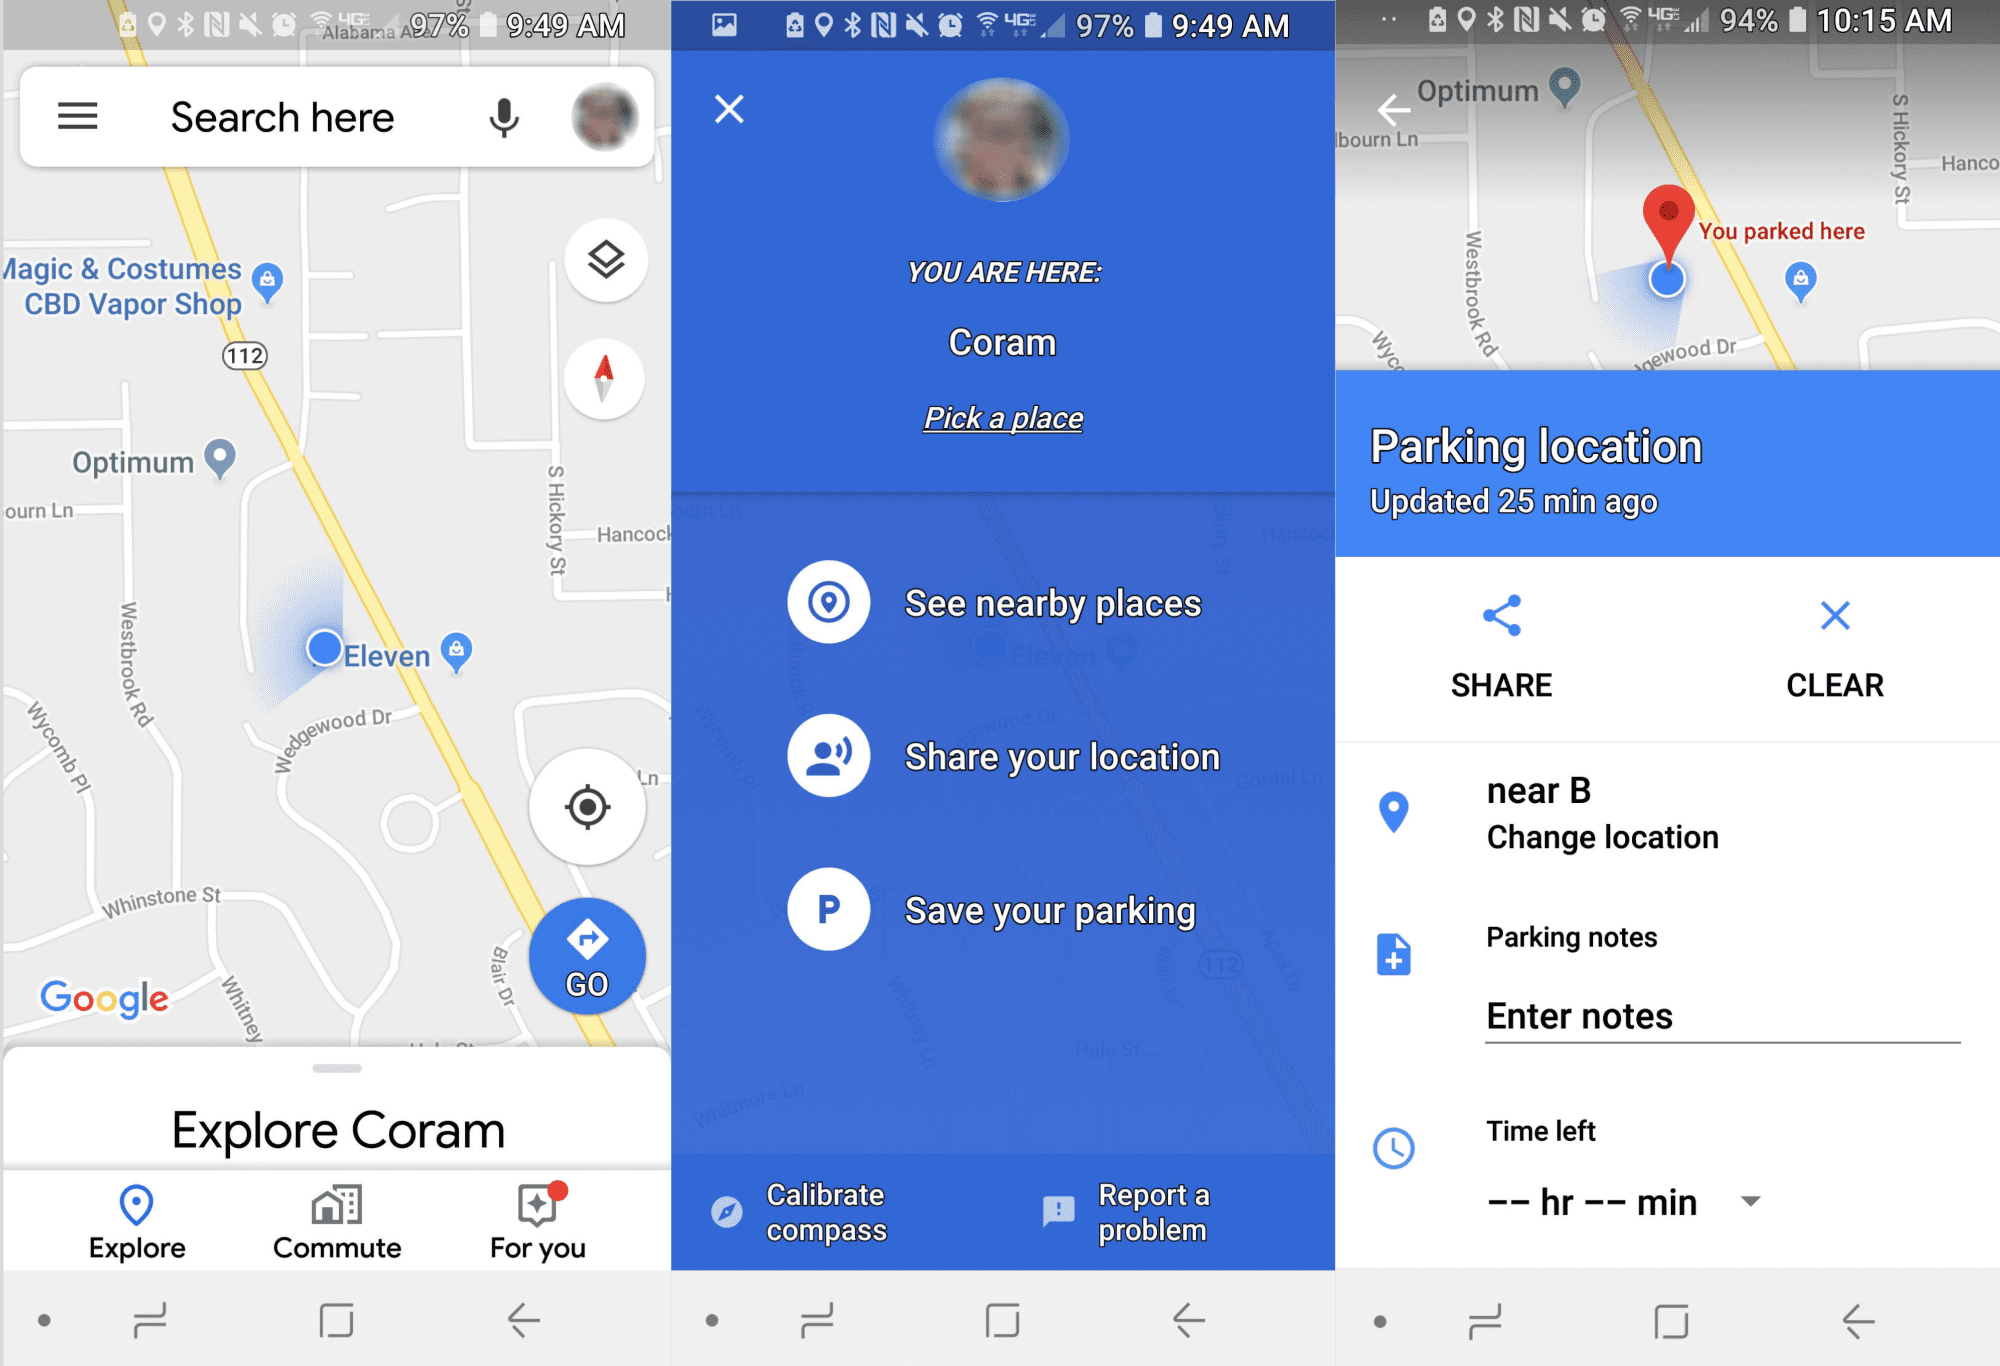 Where Have I Parked? Find Your Parking Spot with Google Maps! on google latitude history view, google location pin, google compound, marketing location, google maps funny, google address location, google maps listing, find ip address location, google car location, google maps example, find current location, google location icon, google my location, google maps icon, google location finder, google location app, google marker, my current location, google maps history, google products,